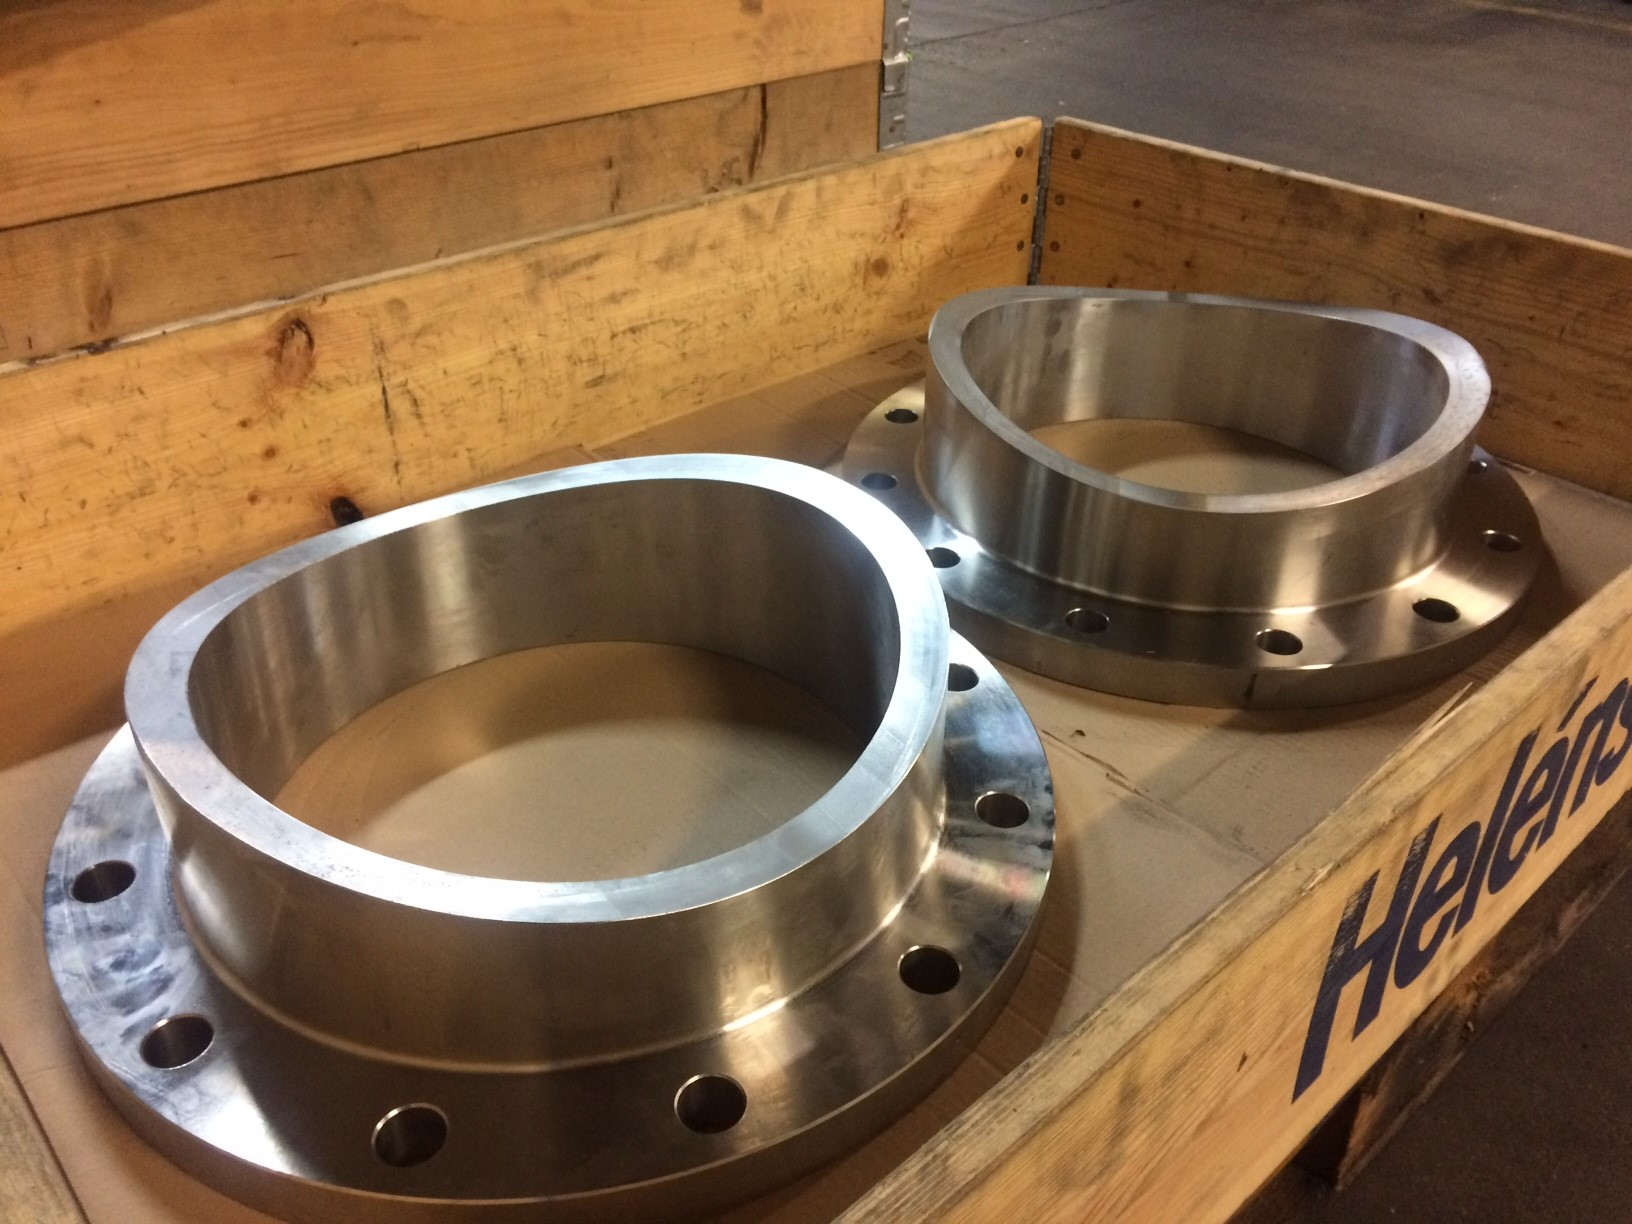 HERTECANT FLANGES, partner for specials!